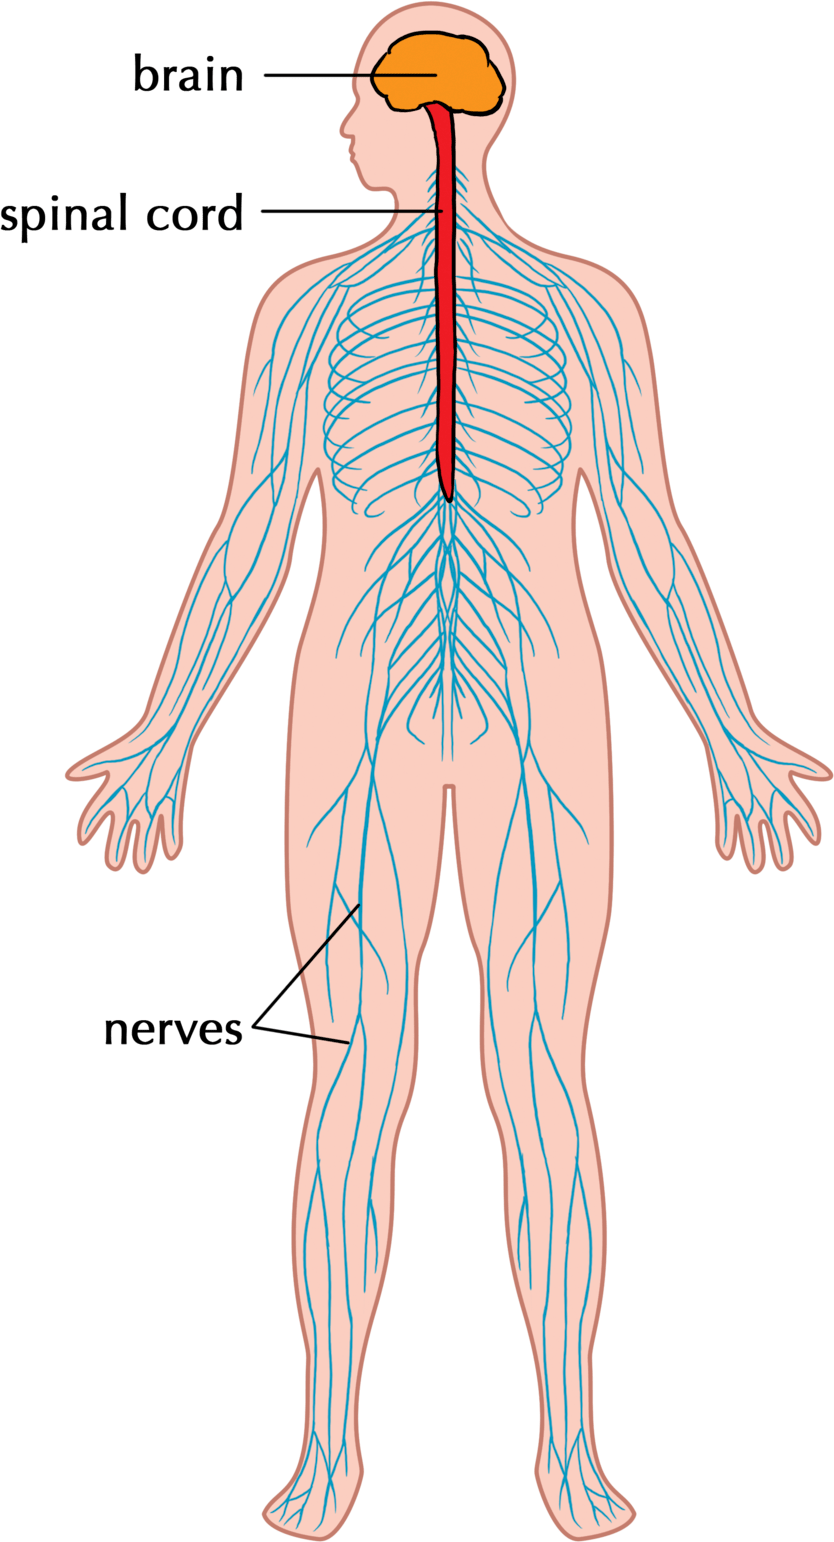 the human nervous system can be understood as a network of interconnected sensors and processors siyavula education flickr cc by [ 1000 x 1849 Pixel ]